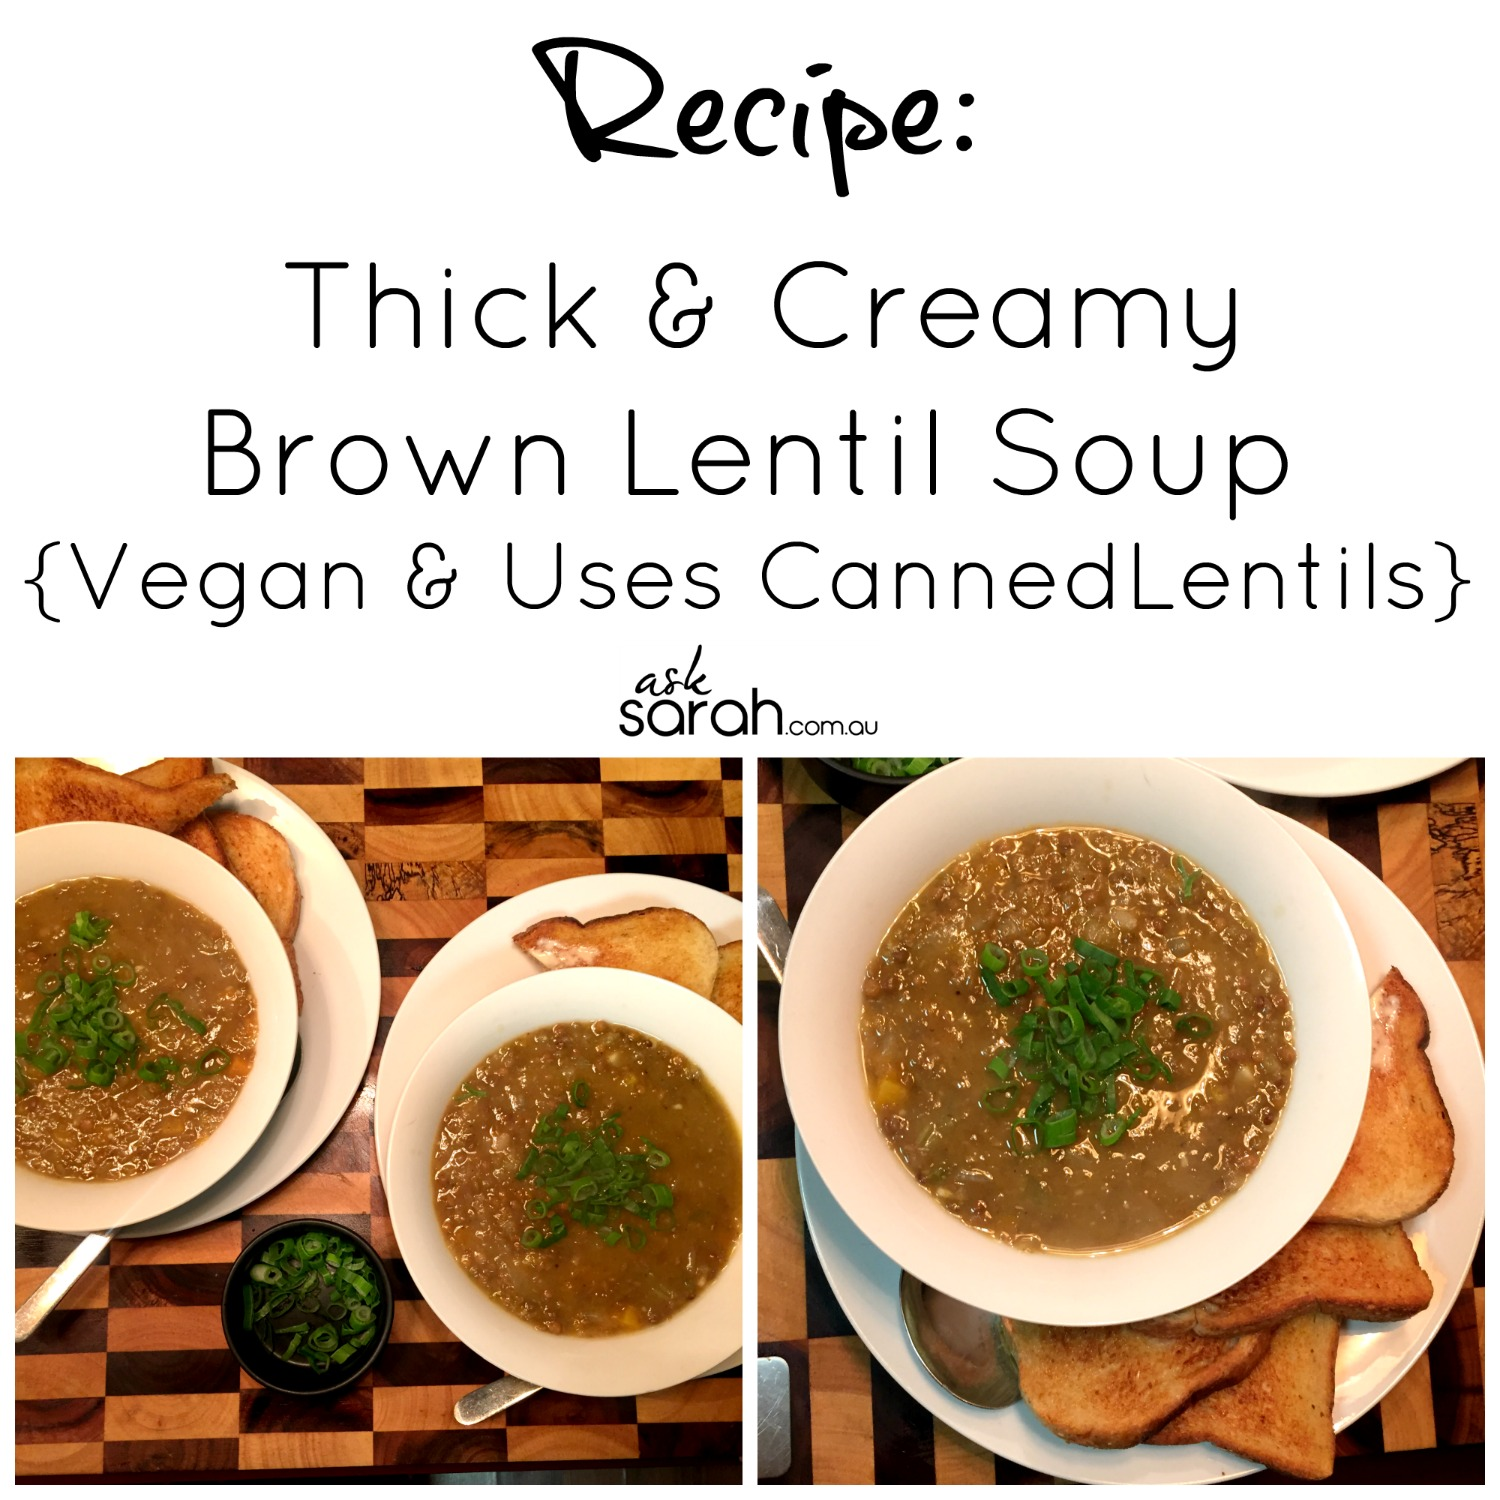 Recipe: Thick & Creamy Brown Lentil Soup {Vegan & Uses Canned Lentils}